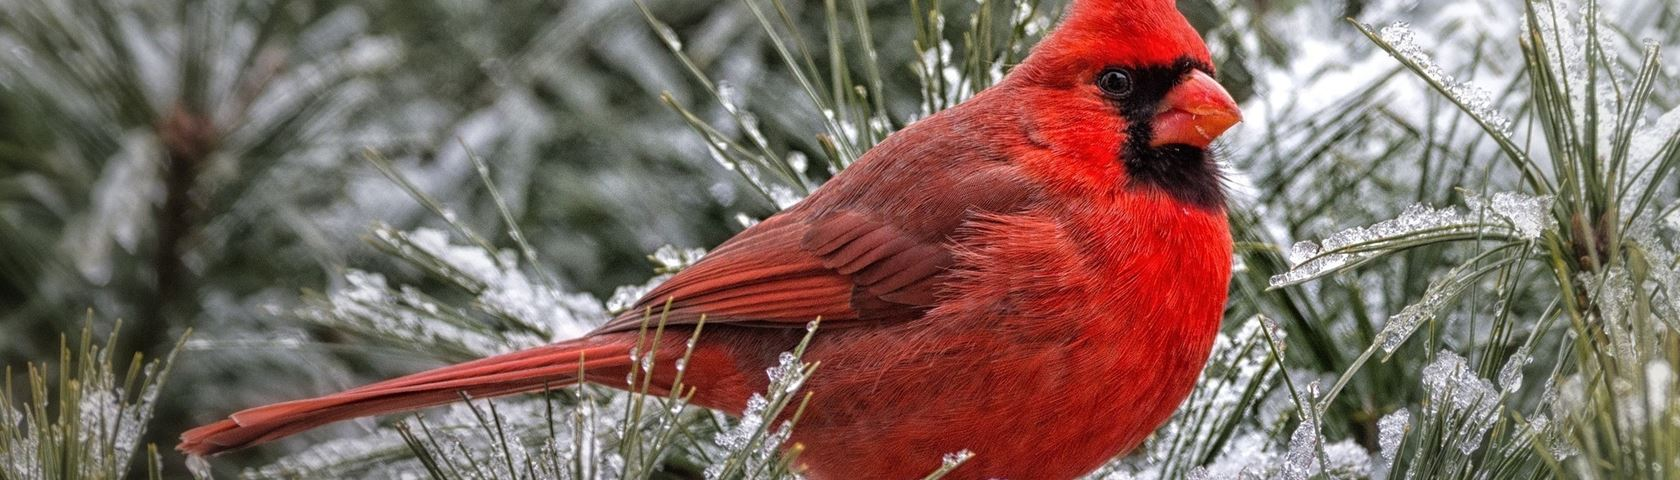 Red Cardinal Male